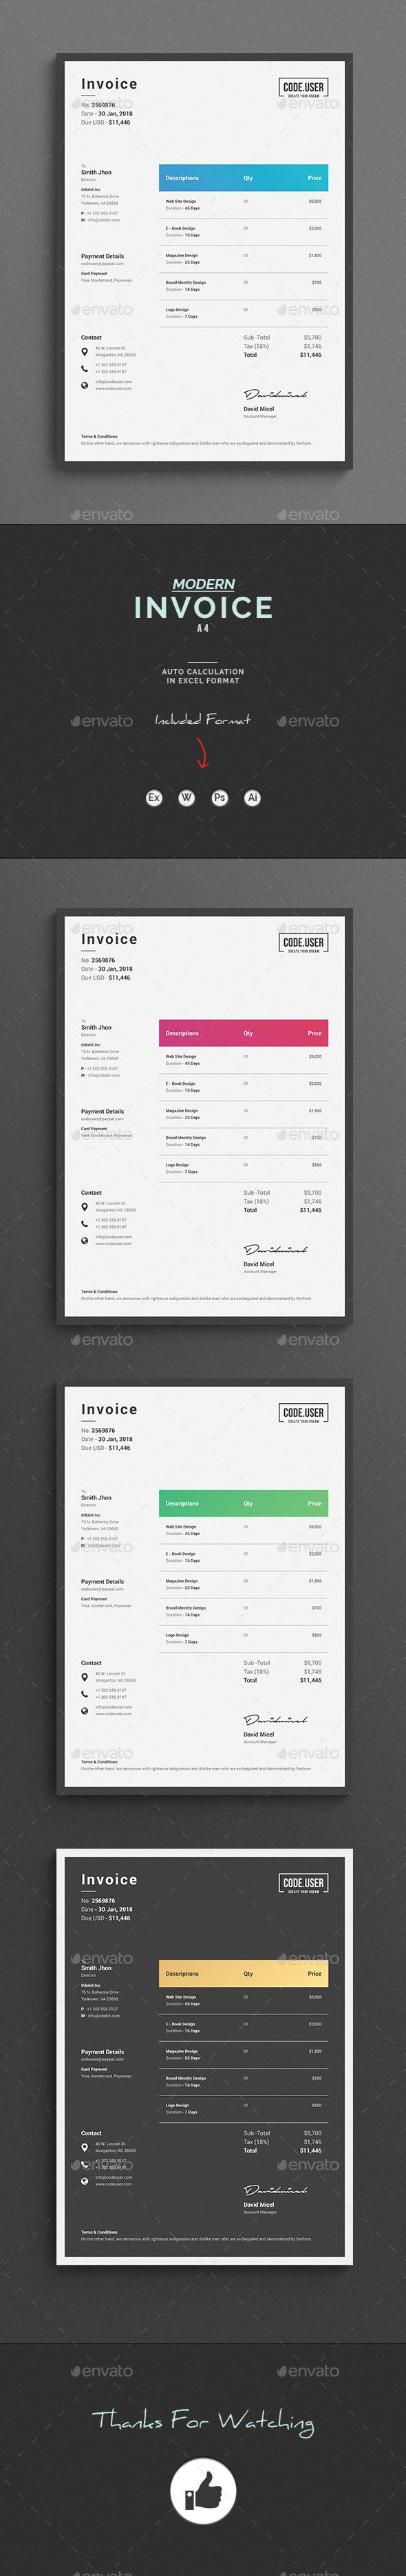 How To Create An Invoice On Excel 214 Best Invoice Templates Excel Images On Pinterest  Invoice .